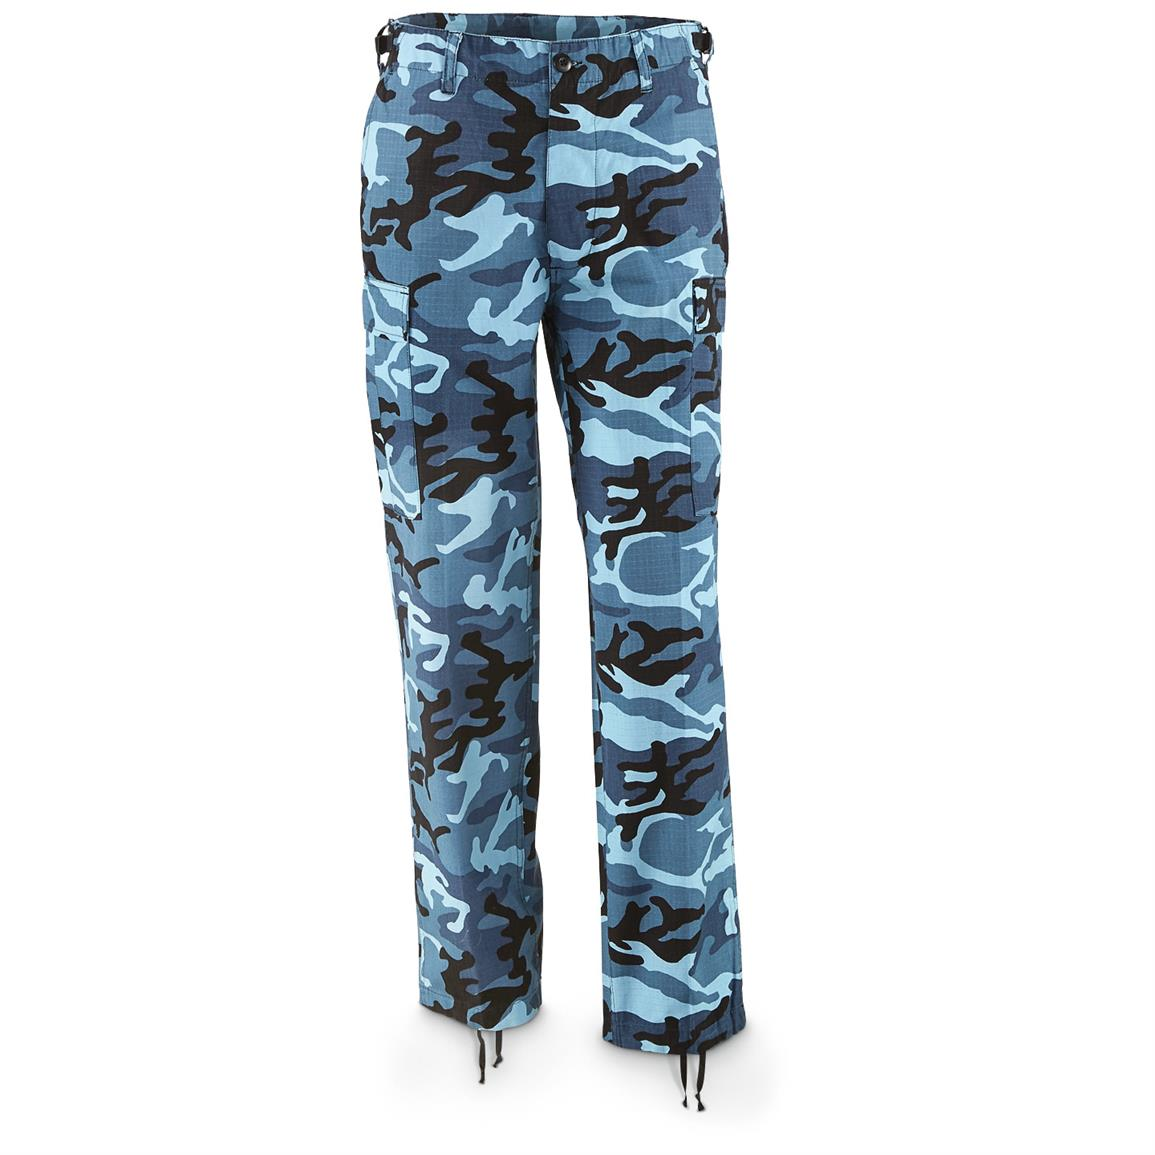 Mil-Tec Military Surplus Men's Skyblue Woodland Camo Ripstop BDU Pants, New